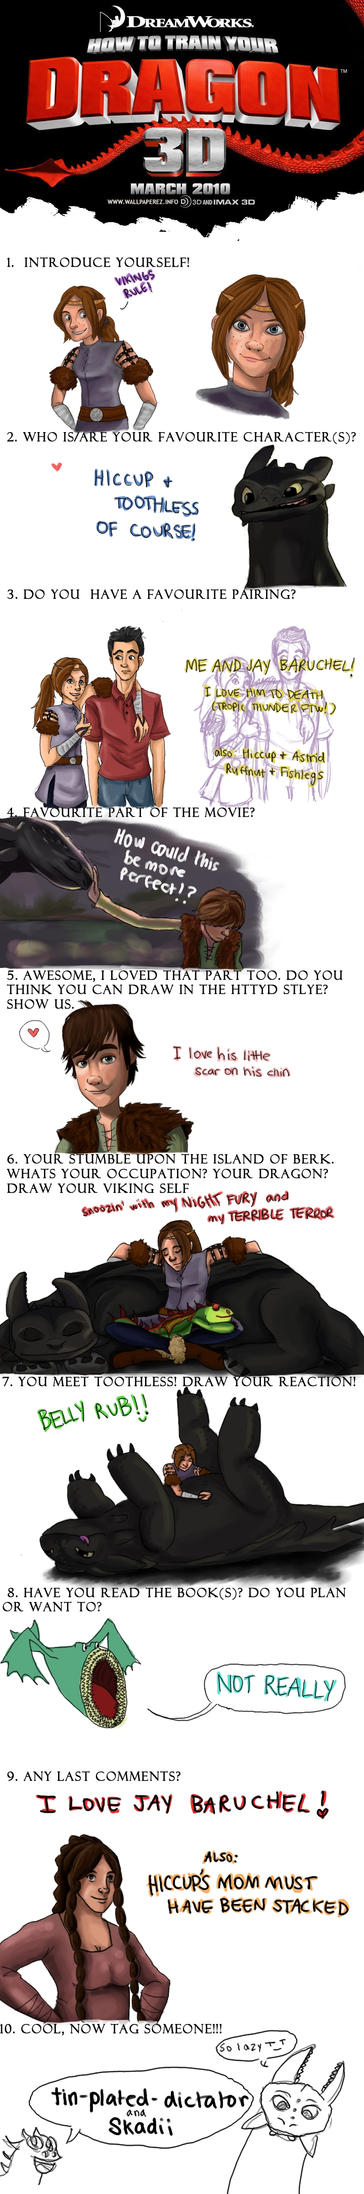 pewdiepie how to train a dragon